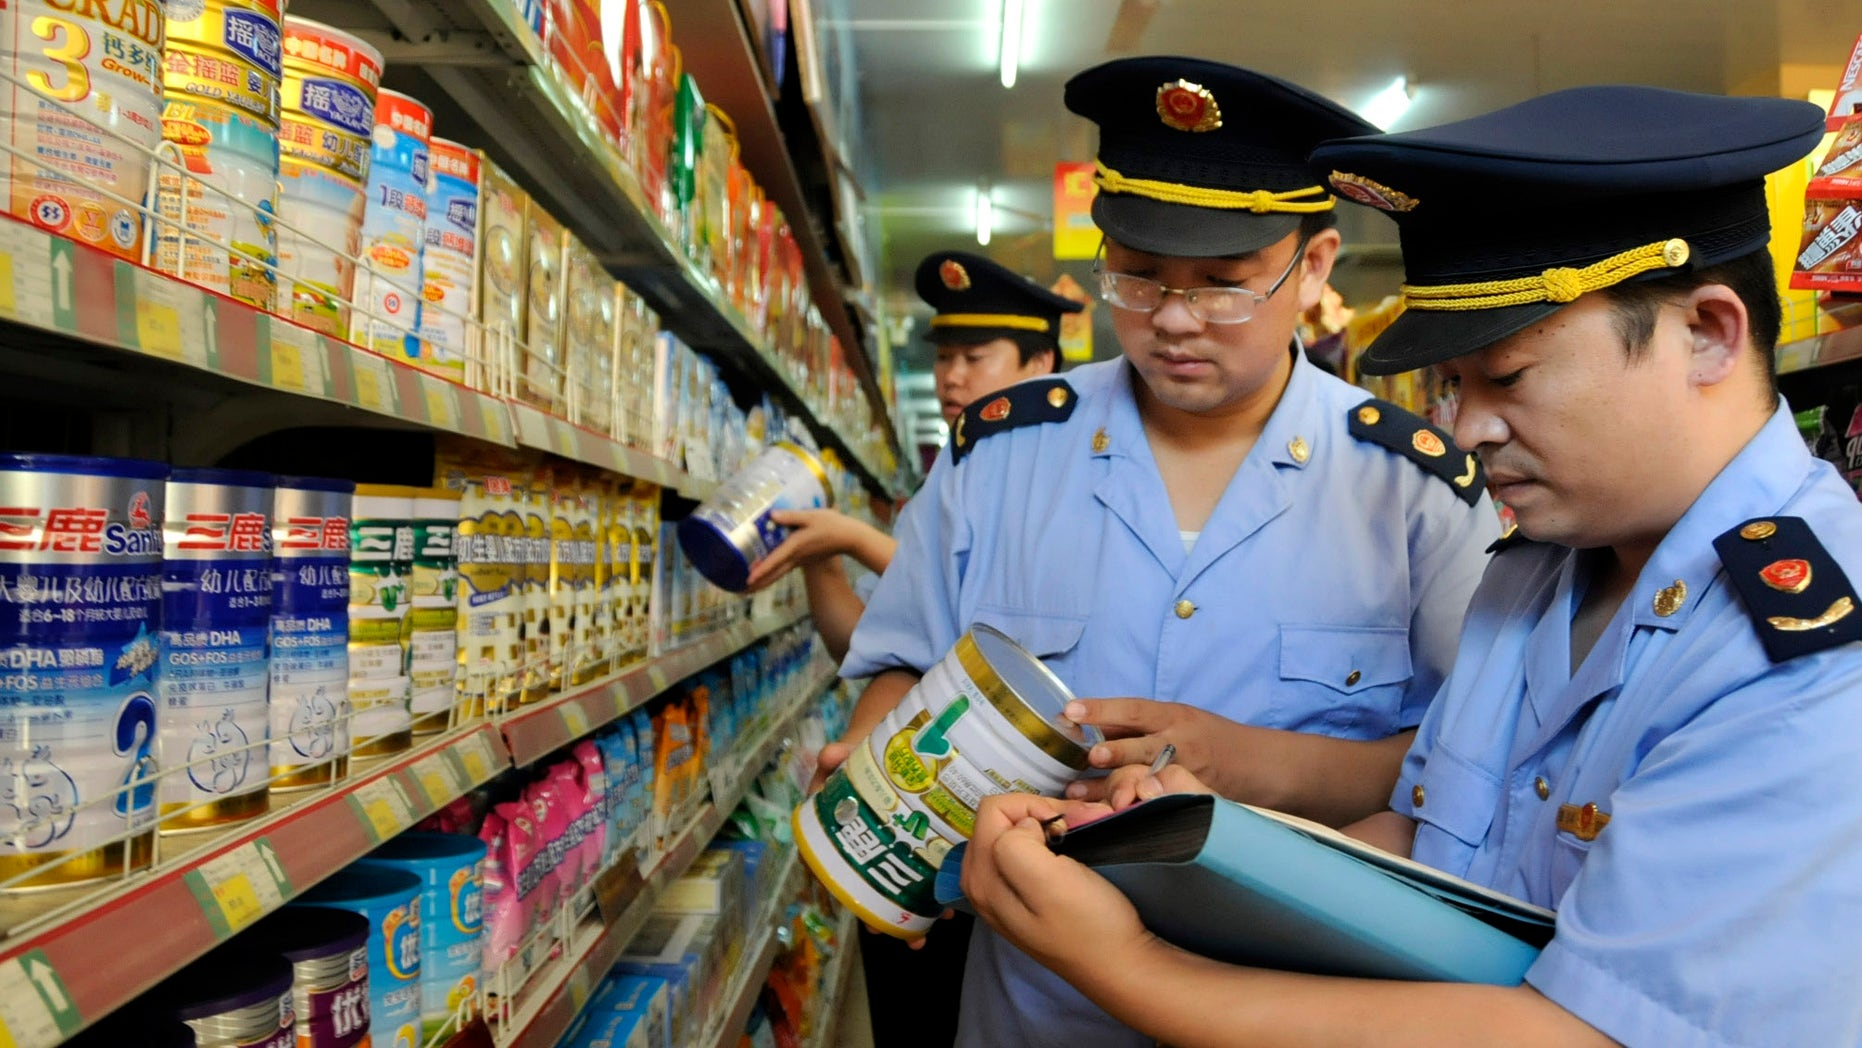 Local industry and commerce administrative bureau personnel check Sanlu formula milk products at a supermarket in Zaozhuang, Shandong province, September 12, 2008. China's Health Ministry has launched a nationwide investigation into the infant kidney stone case related with domestic milk powder, Sanlu formula, and asked all local health agencies to report relevant cases immediately, Xinhua News Agency reported. REUTERS/China Daily (CHINA).  CHINA OUT. NO COMMERCIAL OR EDITORIAL SALES IN CHINA. - RTX8P0V